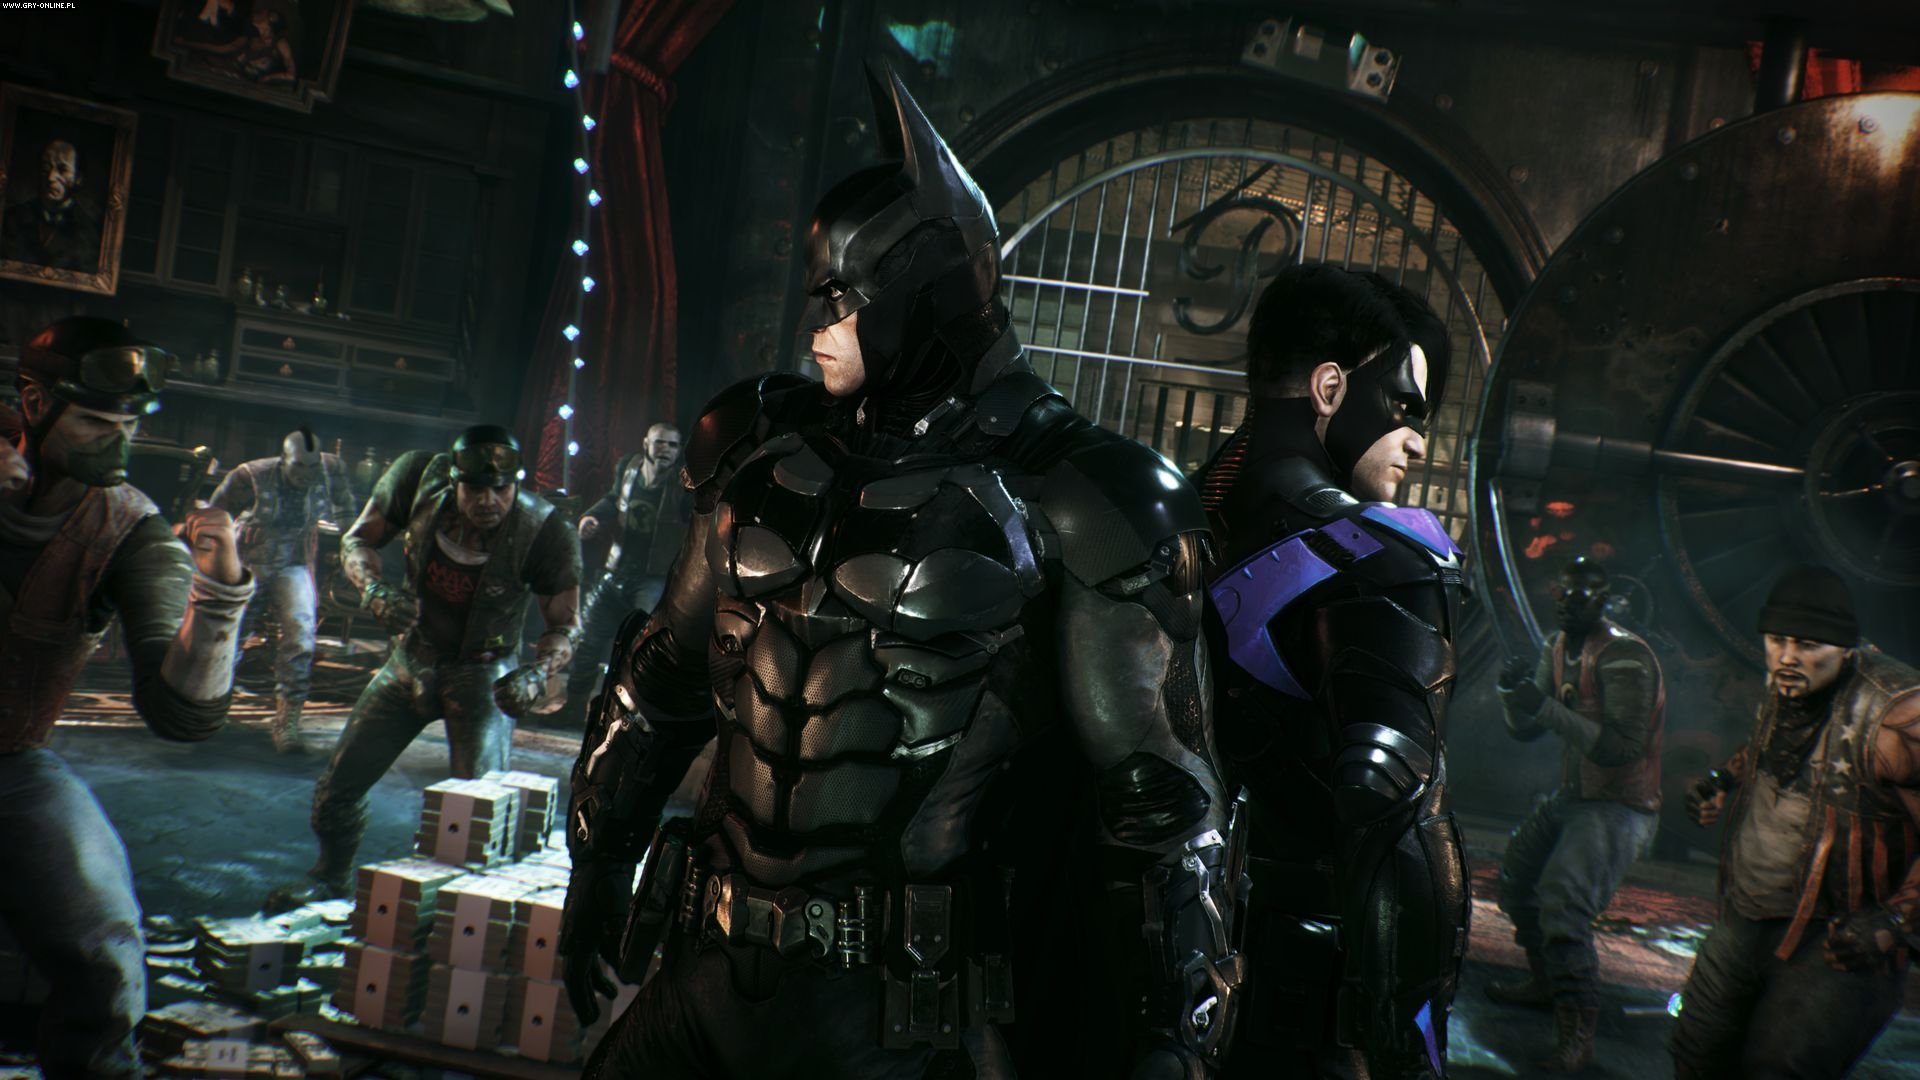 Batman: Arkham Knight PC, PS4, XONE Games Image 7/63, RockSteady Studios, Warner Bros Interactive Entertainment